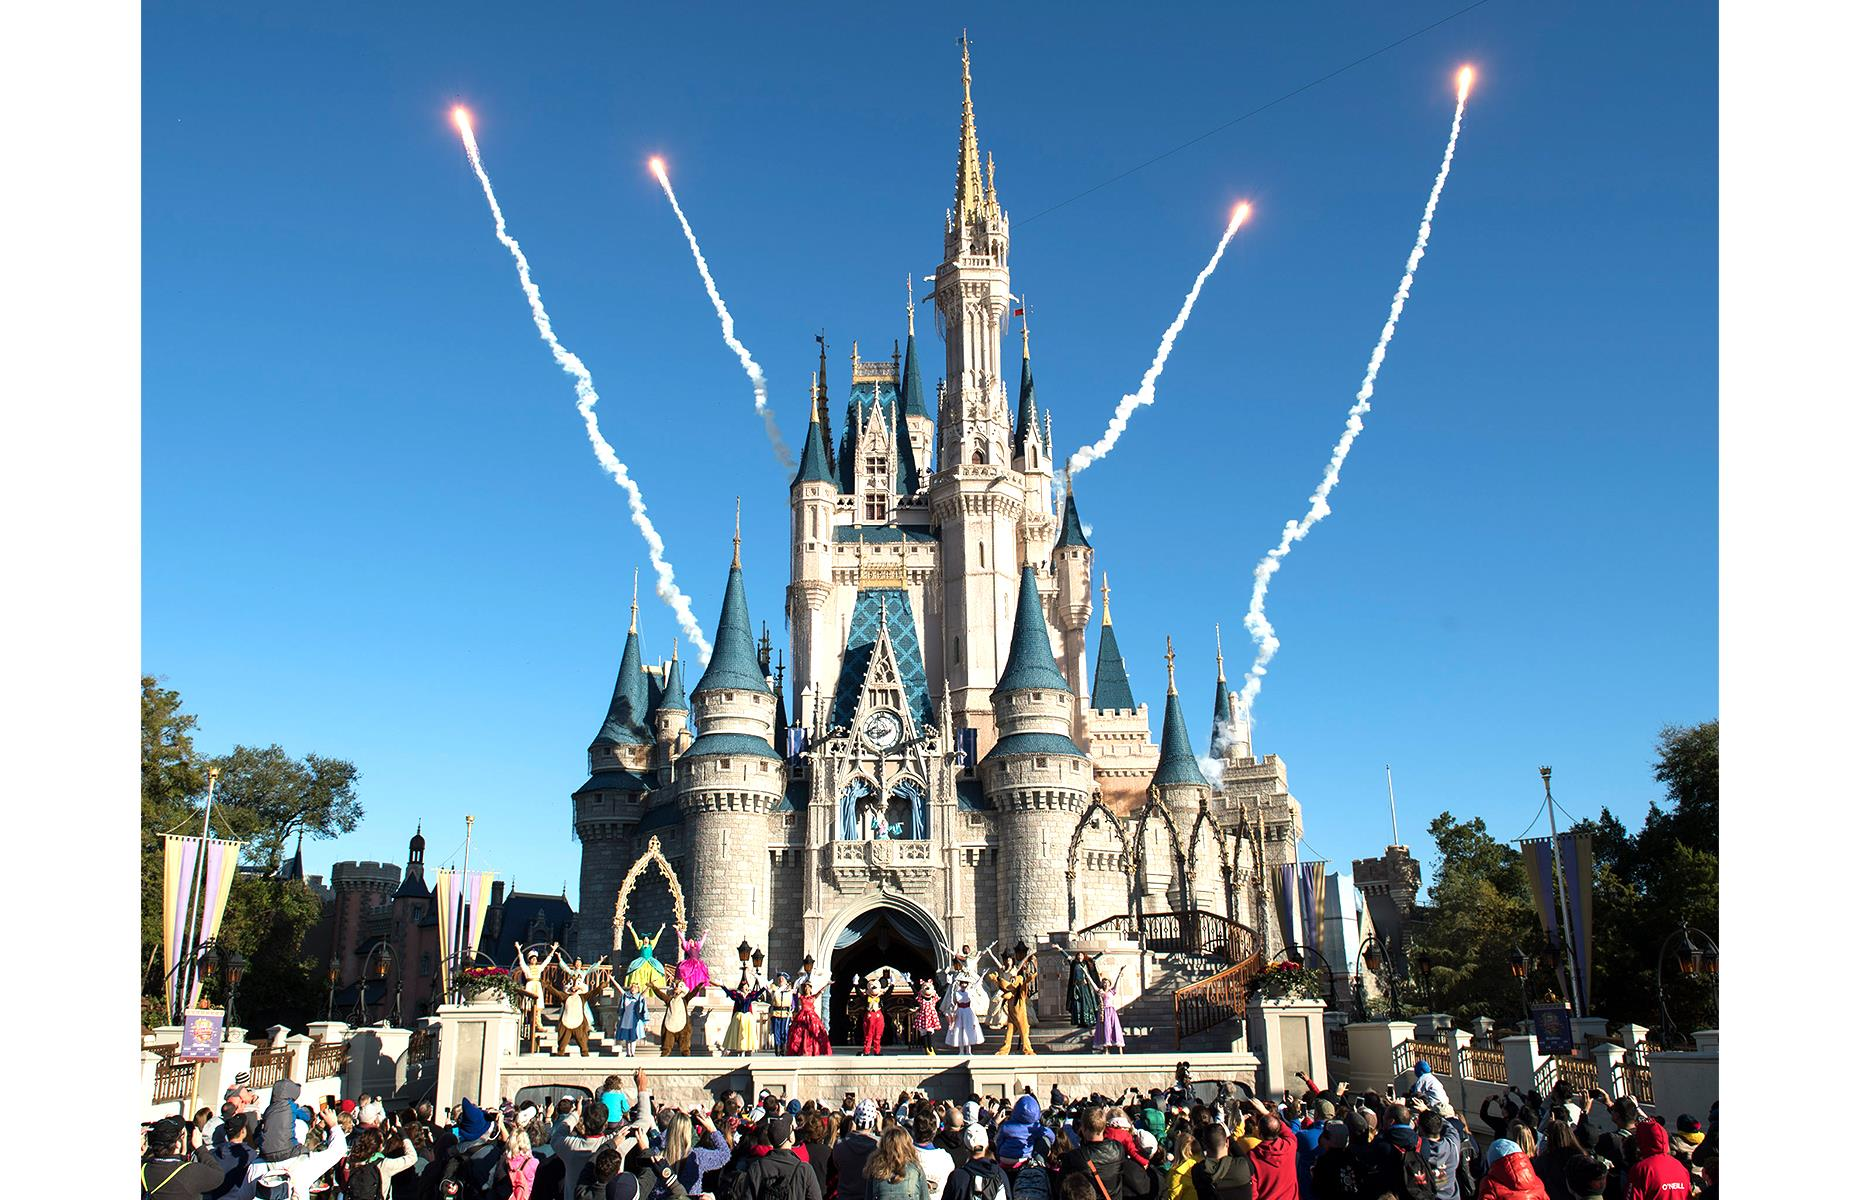 Slide 28 of 31: The turrets and towers of Cinderella Castle preside over the Magic Kingdom, the backdrop for firework displays and performances by well-loved characters. You can usually wander within the castle all day (open but with limited admissions), but a secret suite, or 'royal bedchamber', means a lucky few get to overnight here too. The palatial suite is all stained-glass windows, intricately carved fireplaces and gold-patterned linens, and a stay is by invitation only. Now go back in time with historic pictures of Disney's parks.